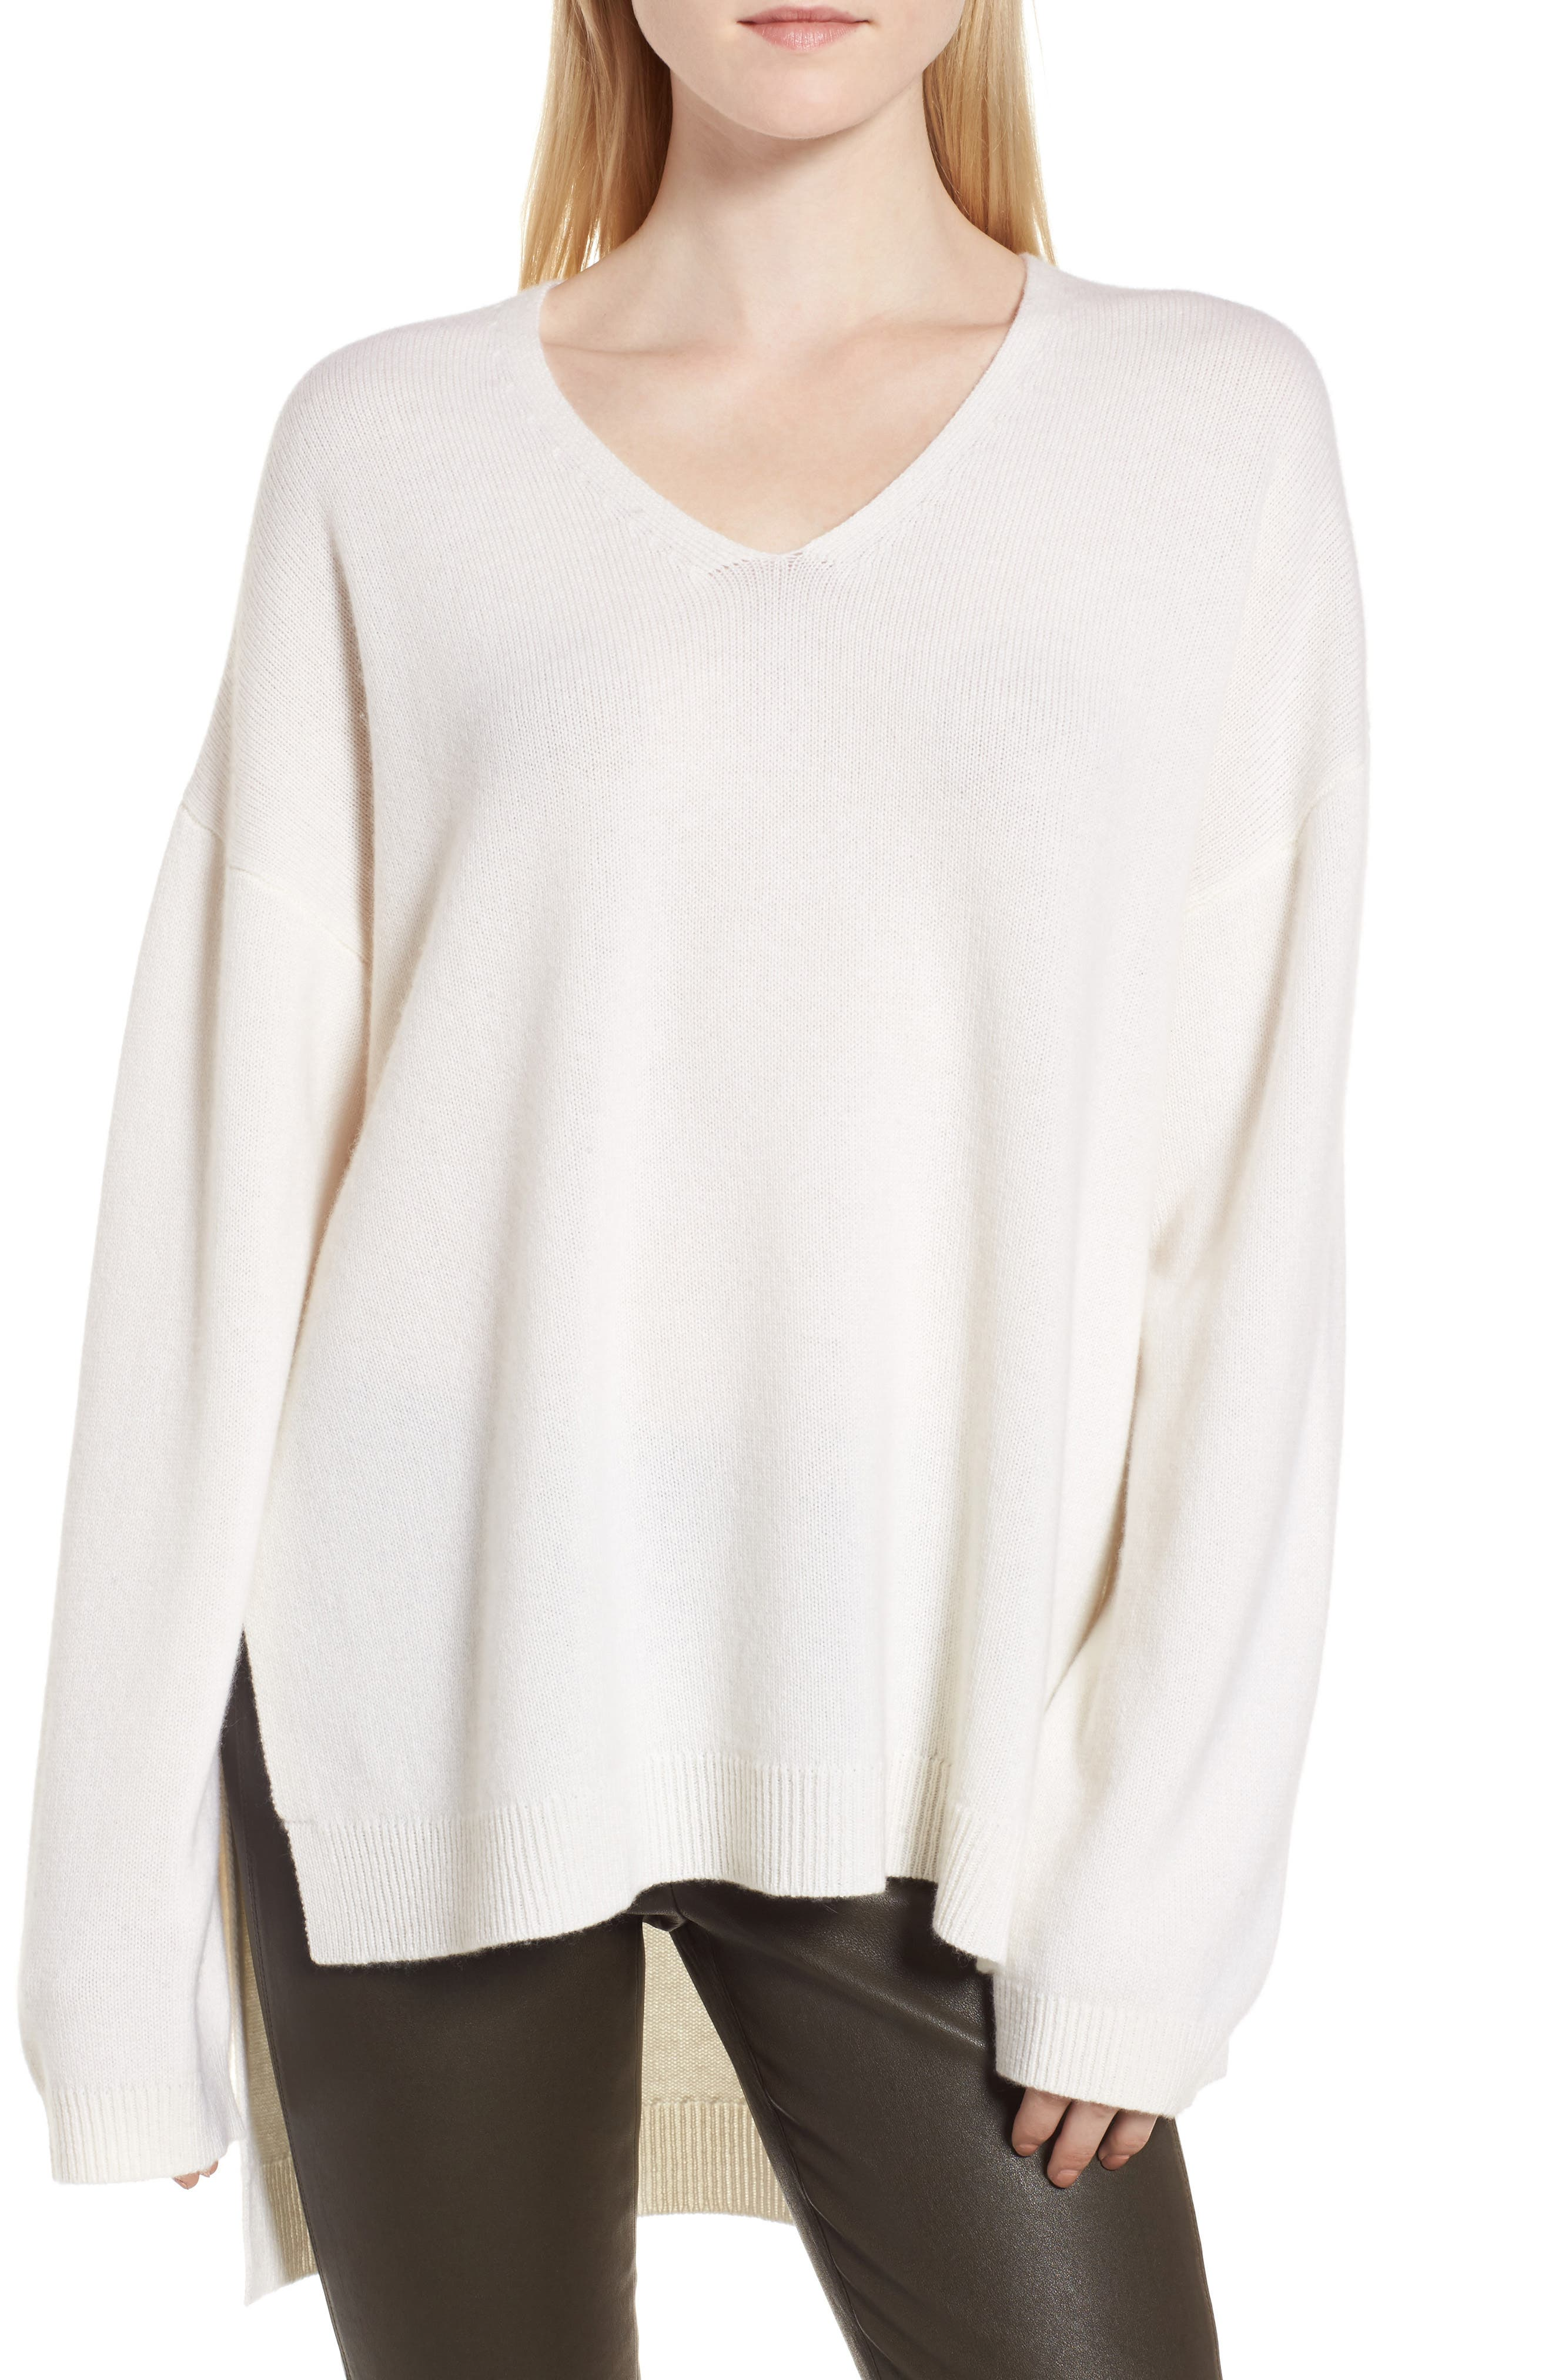 Nordstrom Signature Cashmere High/Low Tunic Sweater